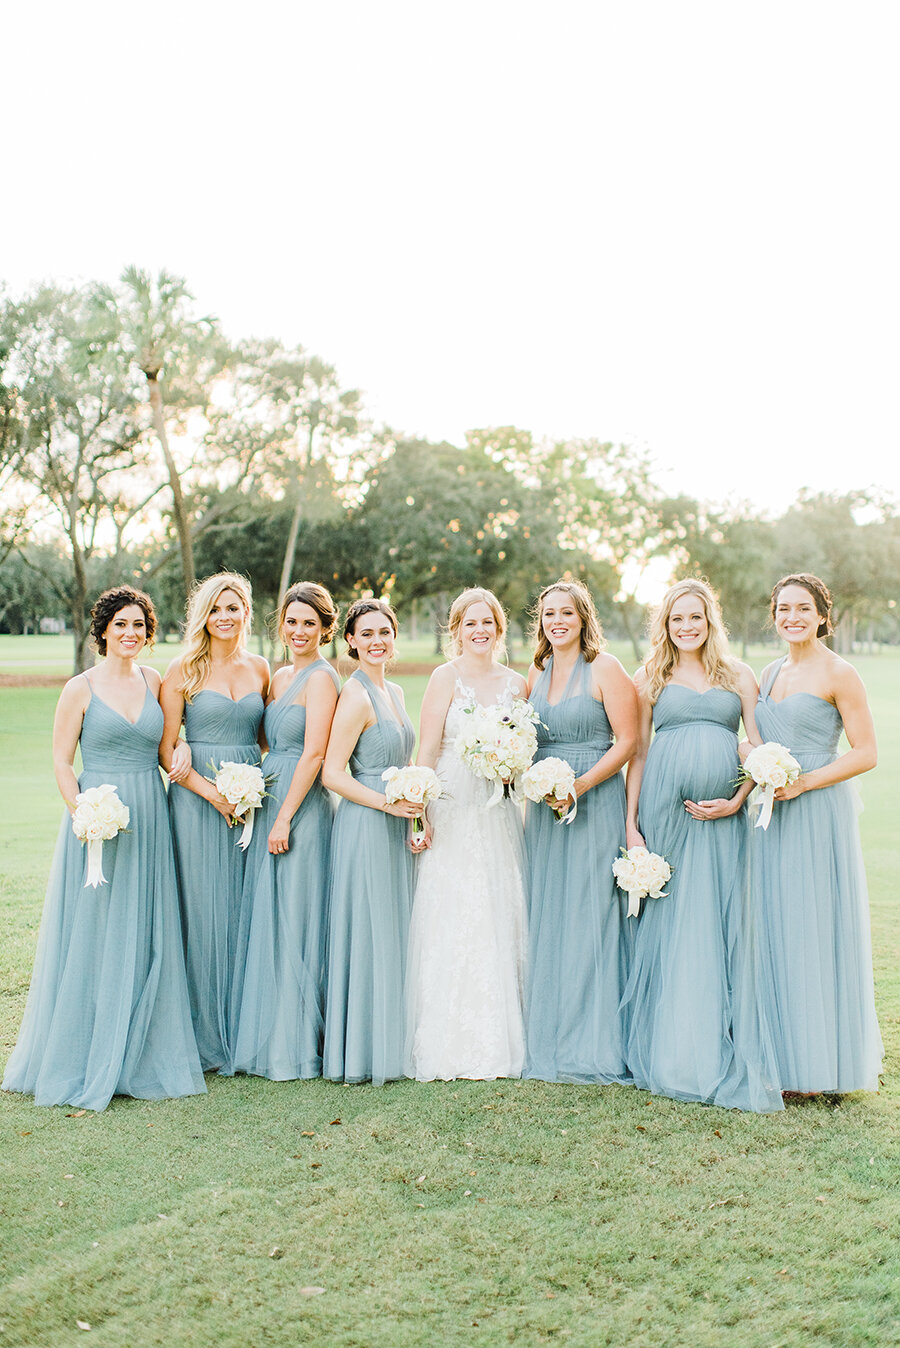 Bride & Bridesmaids Portraits